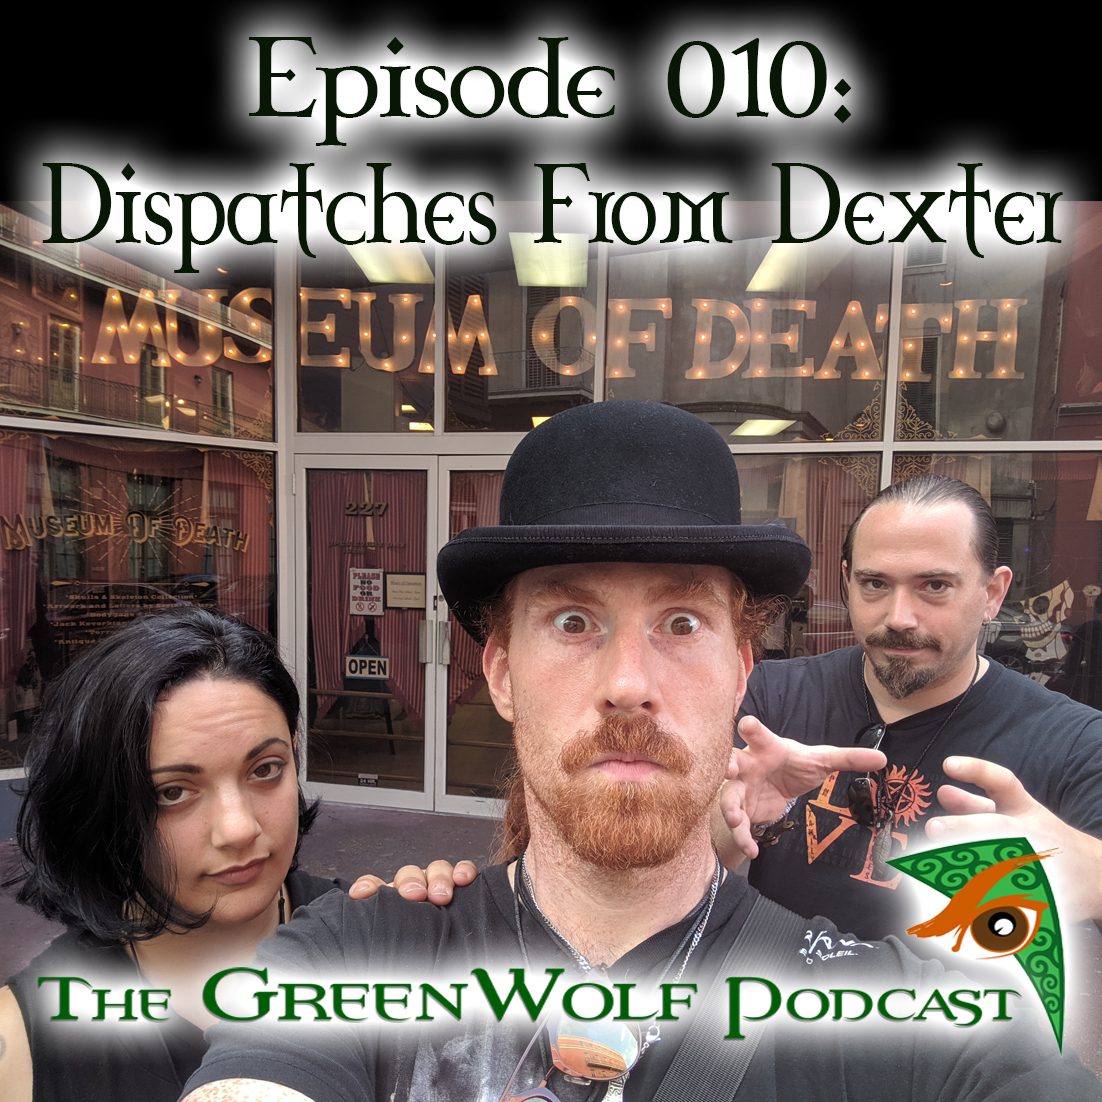 The GreenWolf Podcast - Ep. 010 Dispatches From Dexter